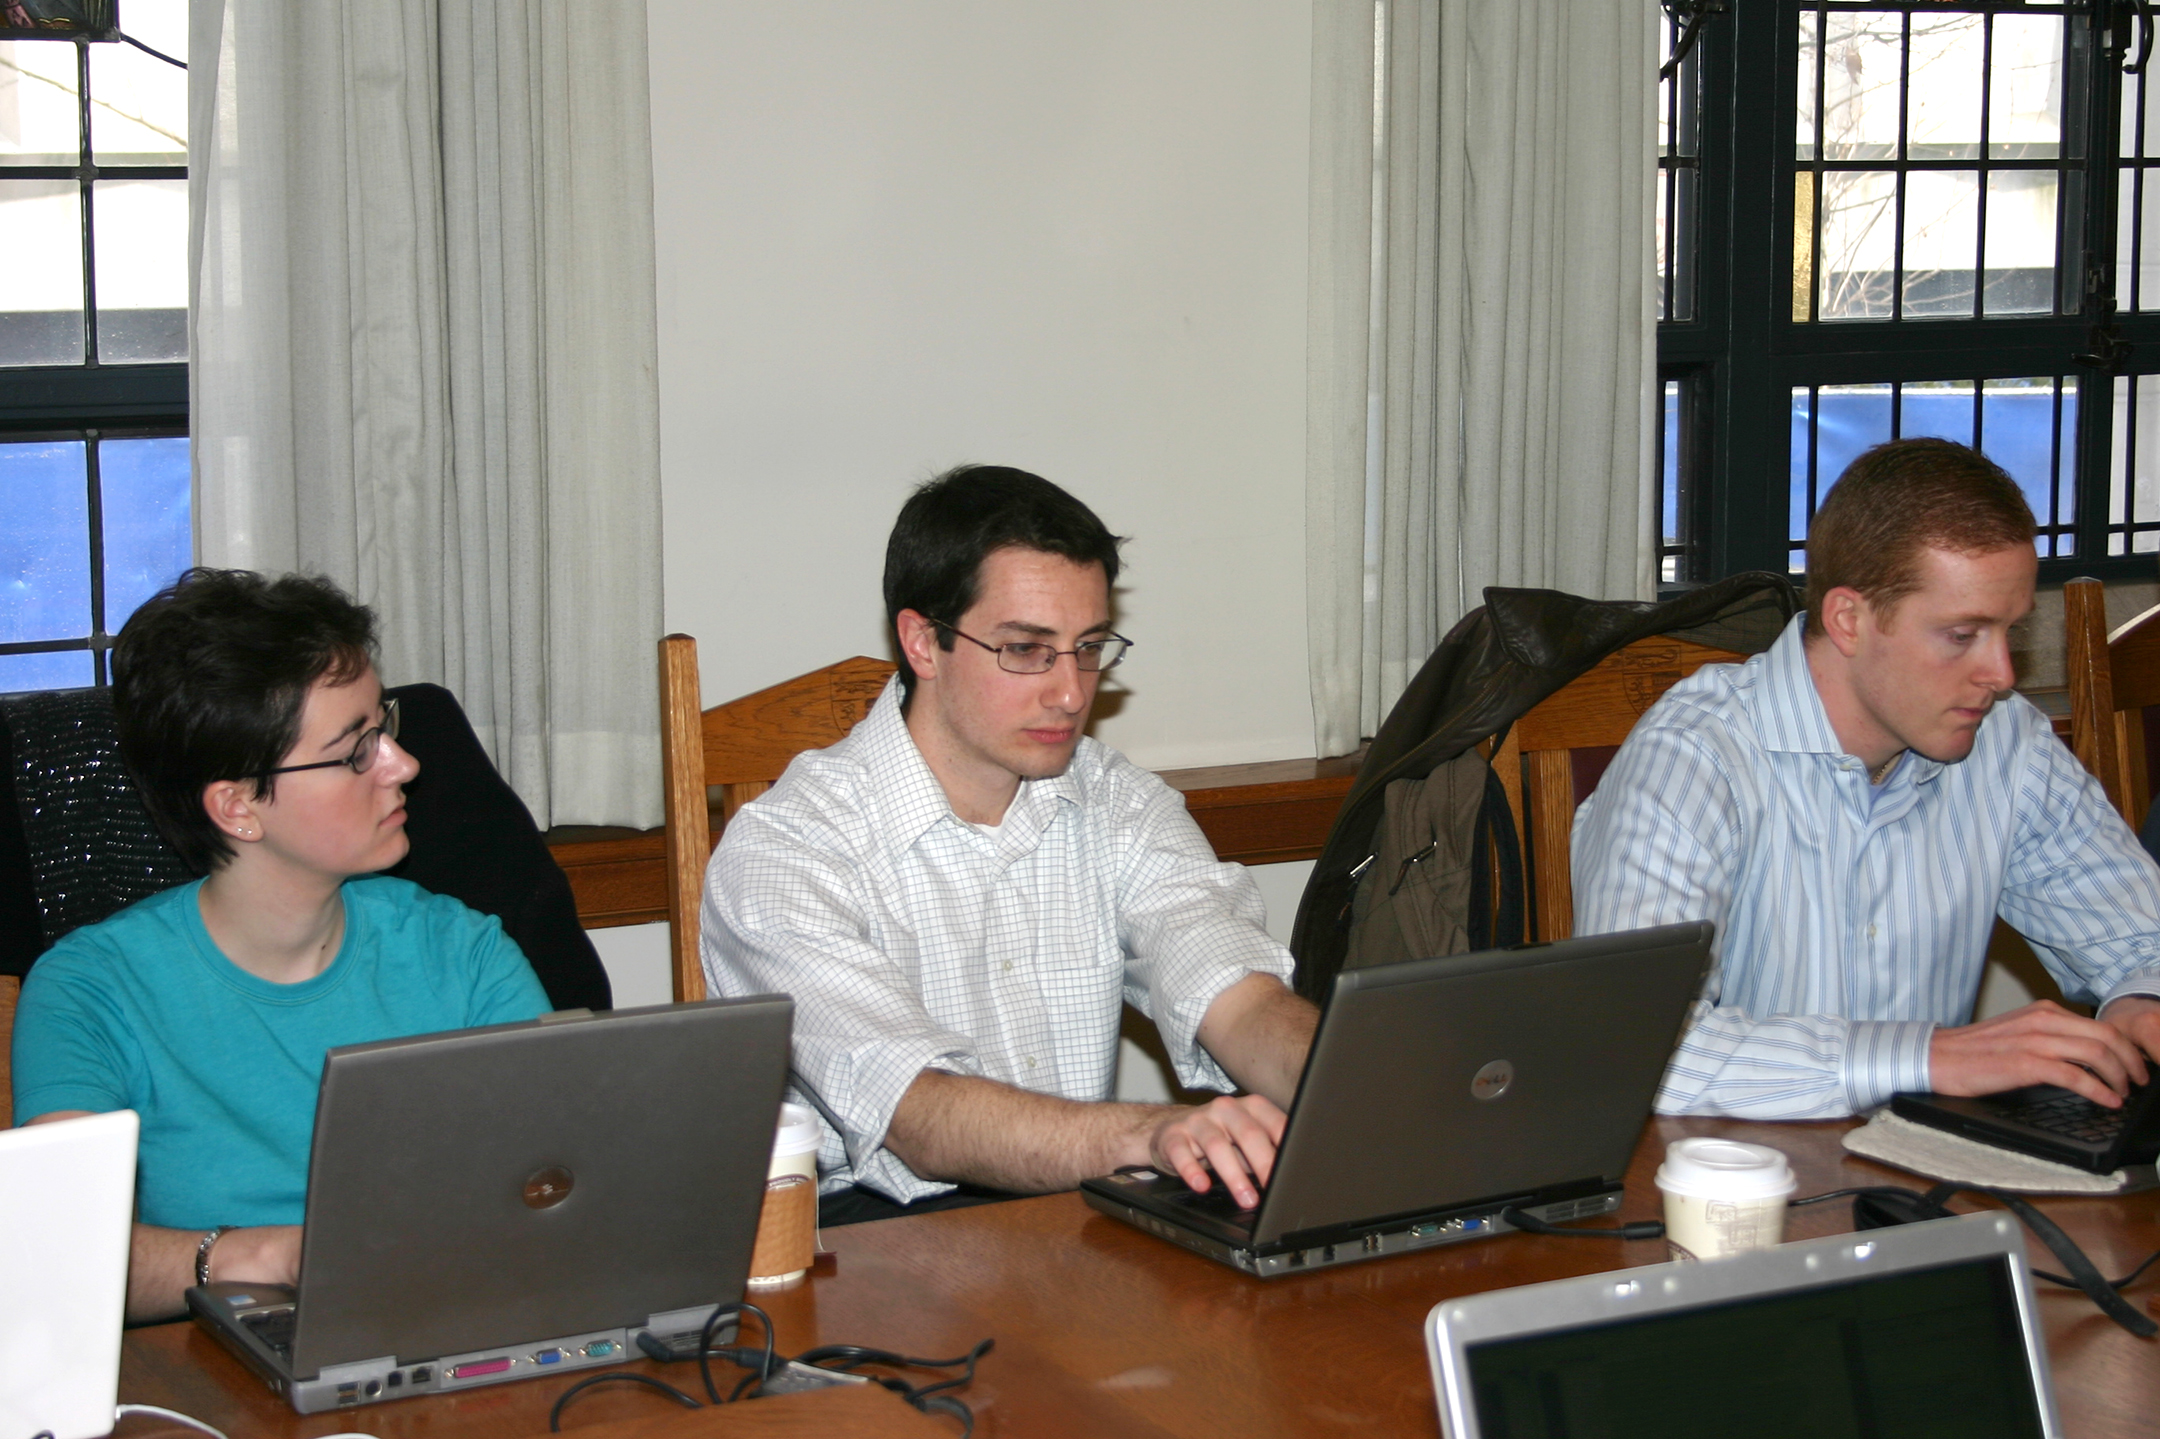 Sara Jeruss '08, Anthony Vitarelli '09, and Seth Lloyd '08